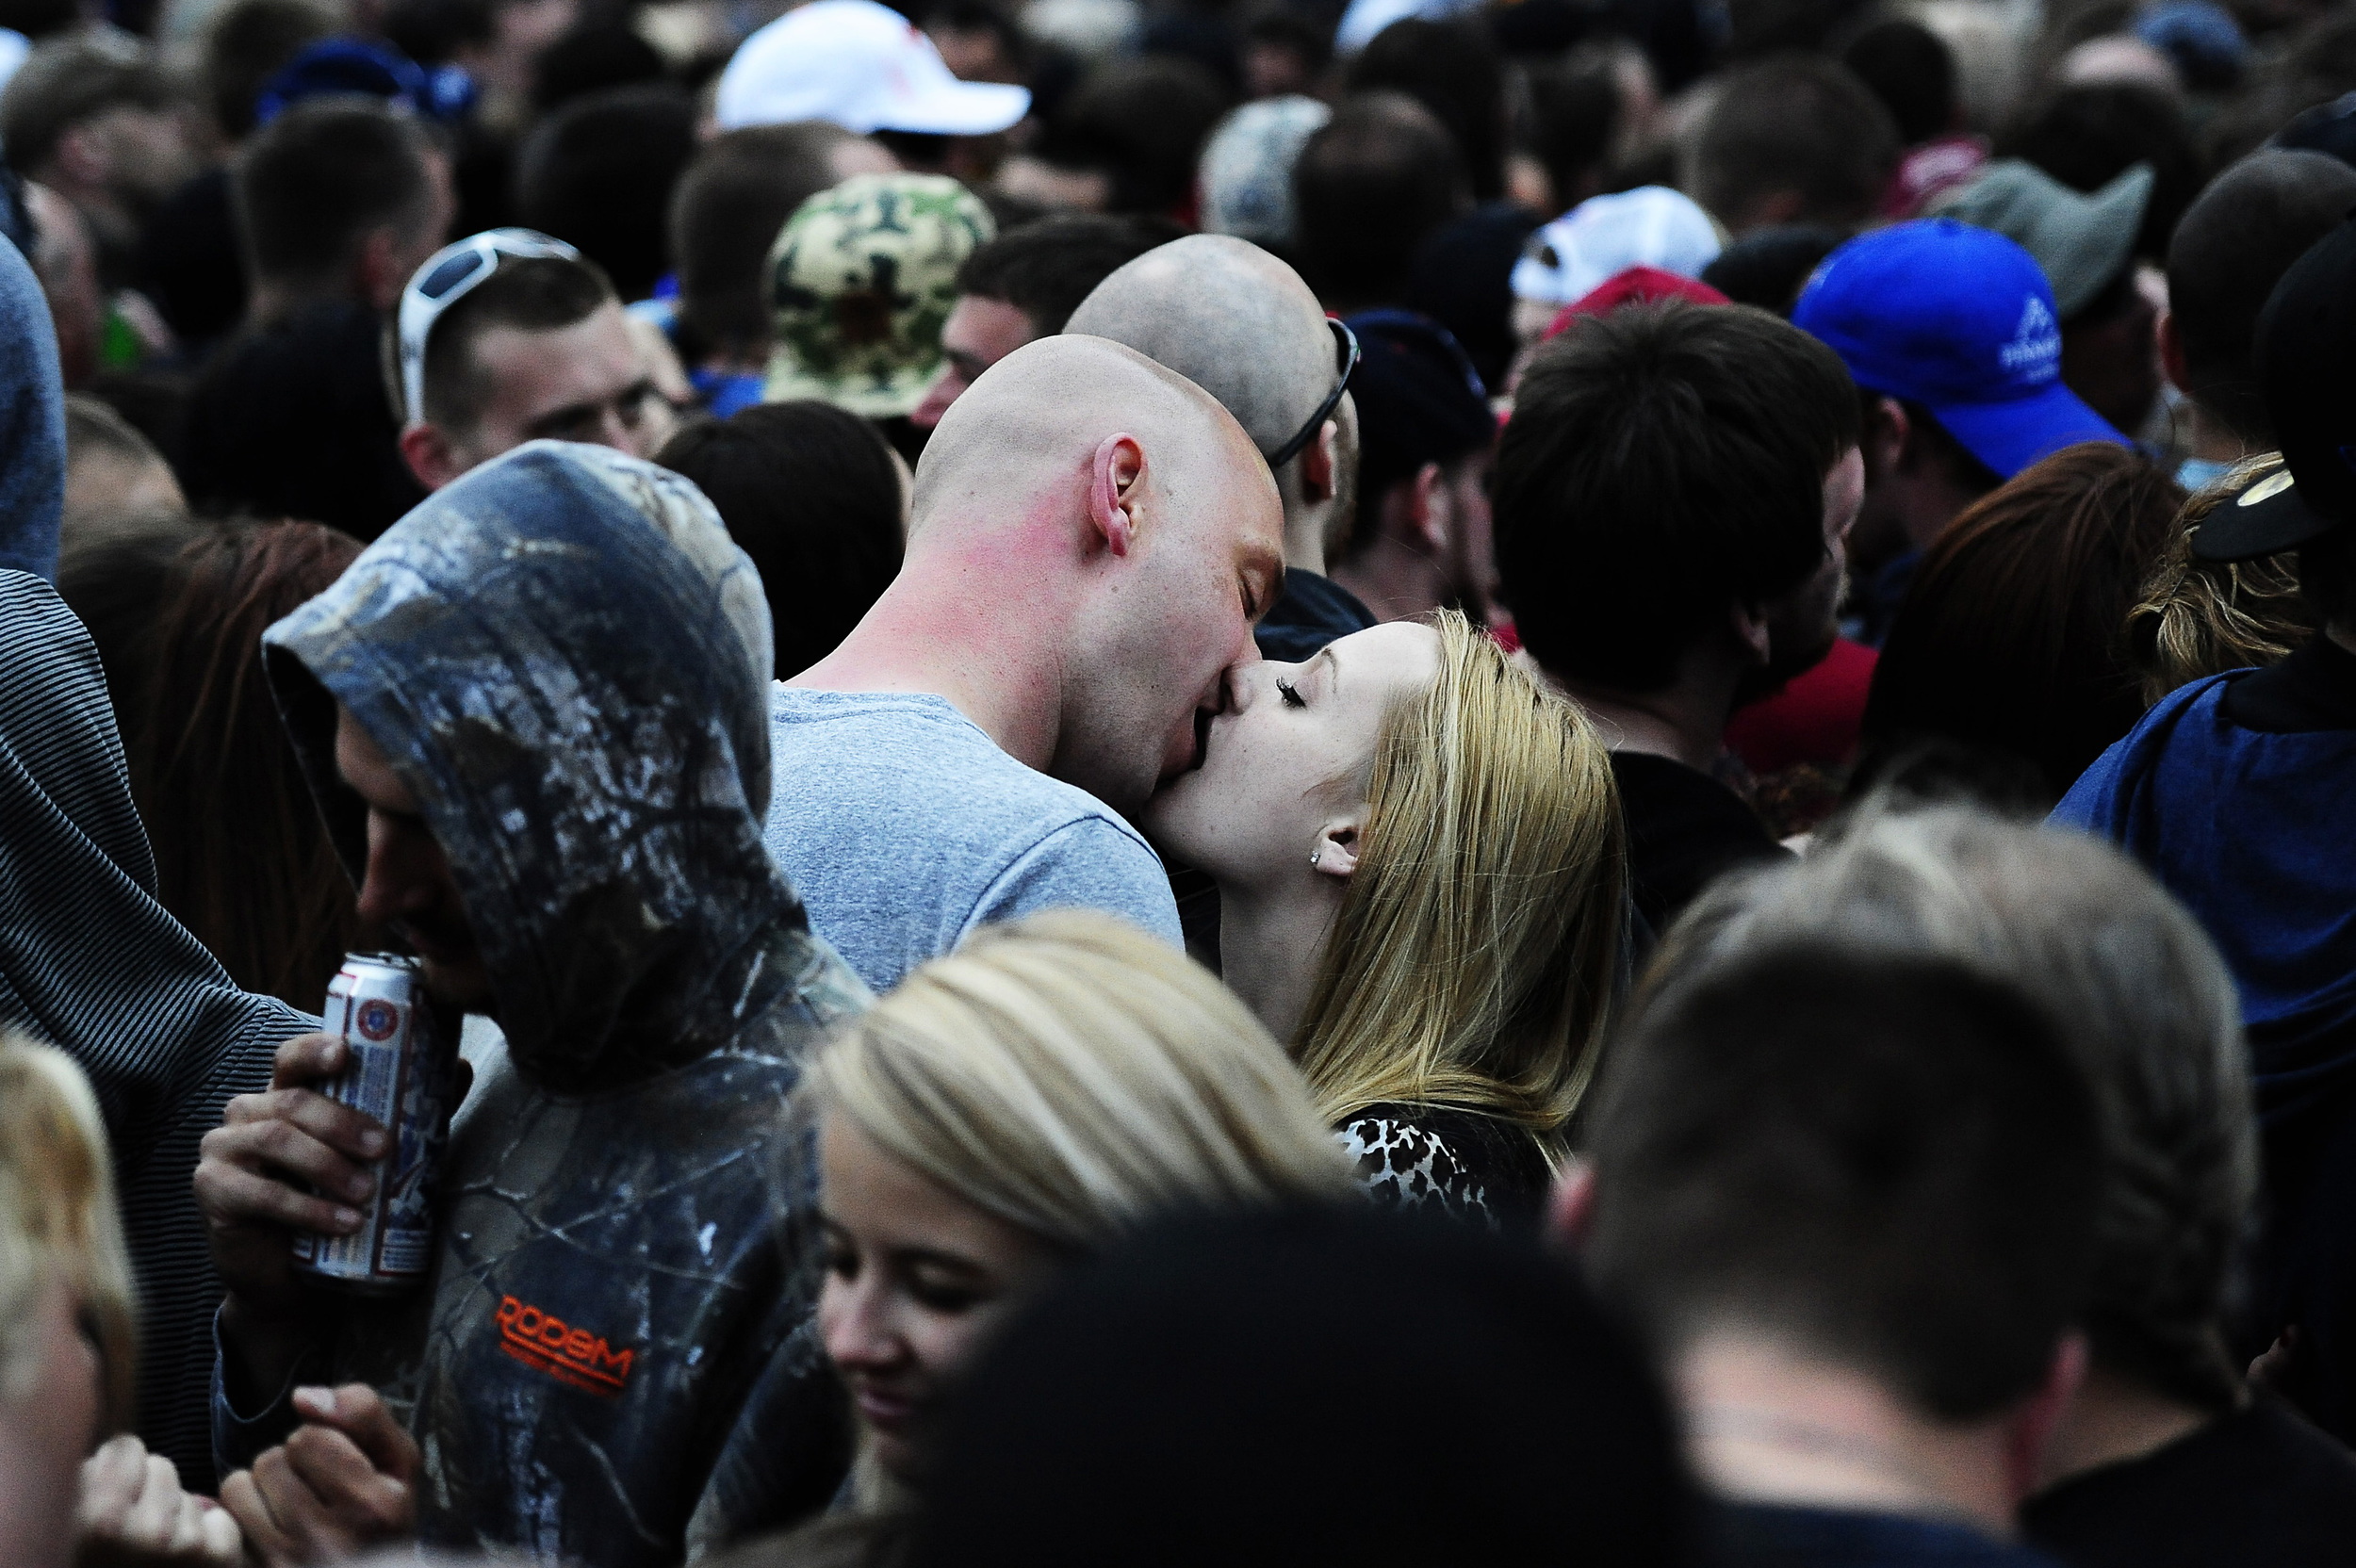 A couple enjoy a quiet moment with each other among the crowd during the annual Rock on the Range music festival at the Columbus Crew Stadium on Friday, May 16, 2014. Over 103,000 people will have attended the event over the next three days.